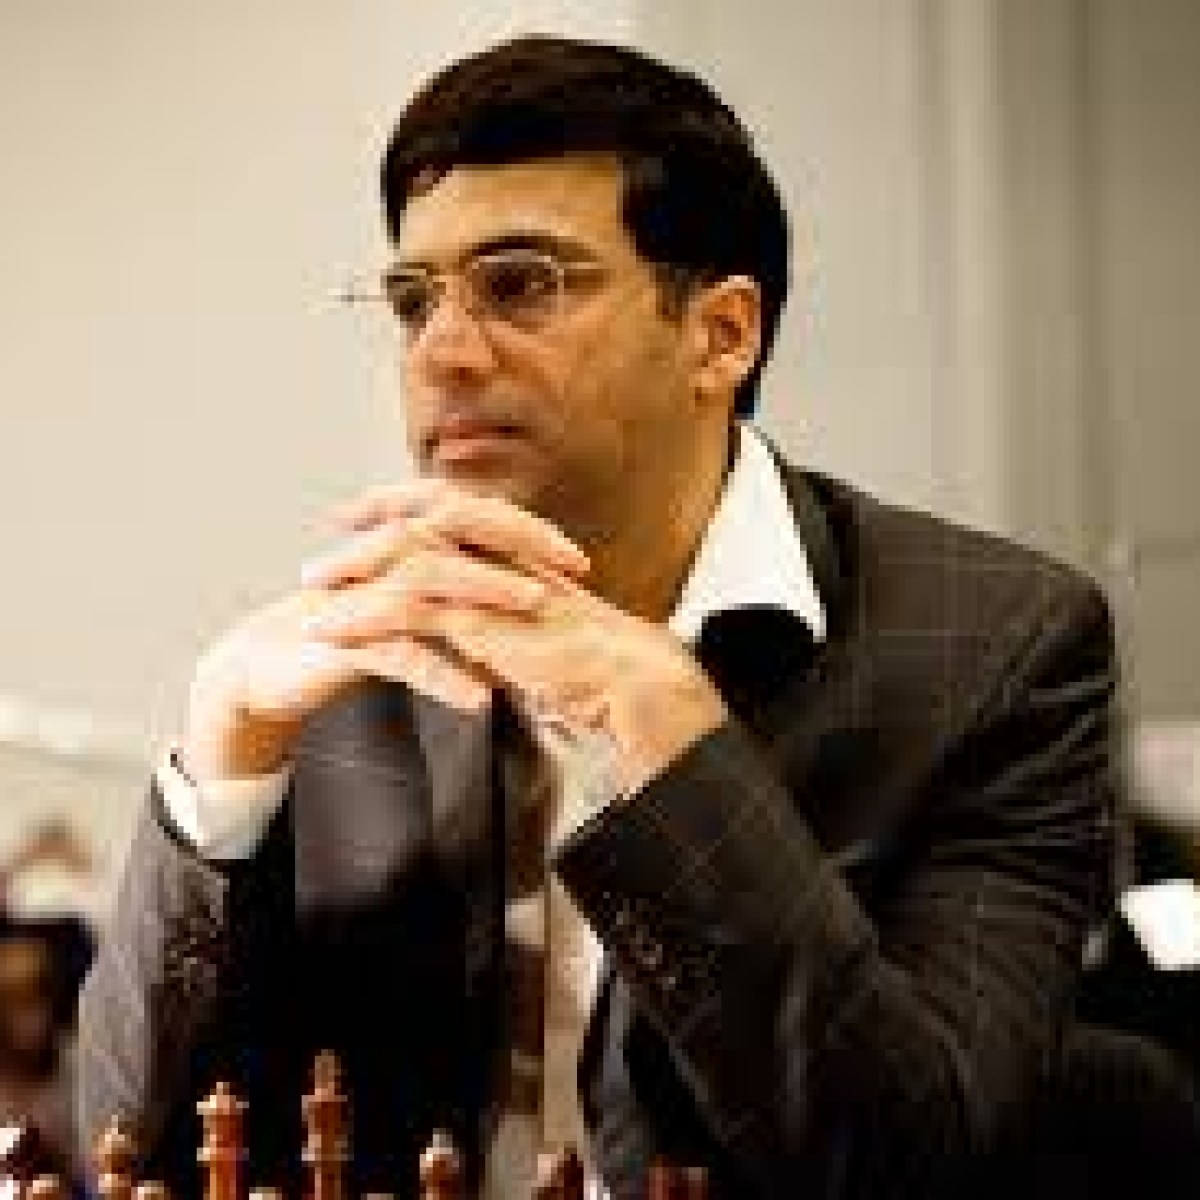 Commentary to keep ViswanathanAnand busy after COVID-19 restrictions delay return to India from Germany